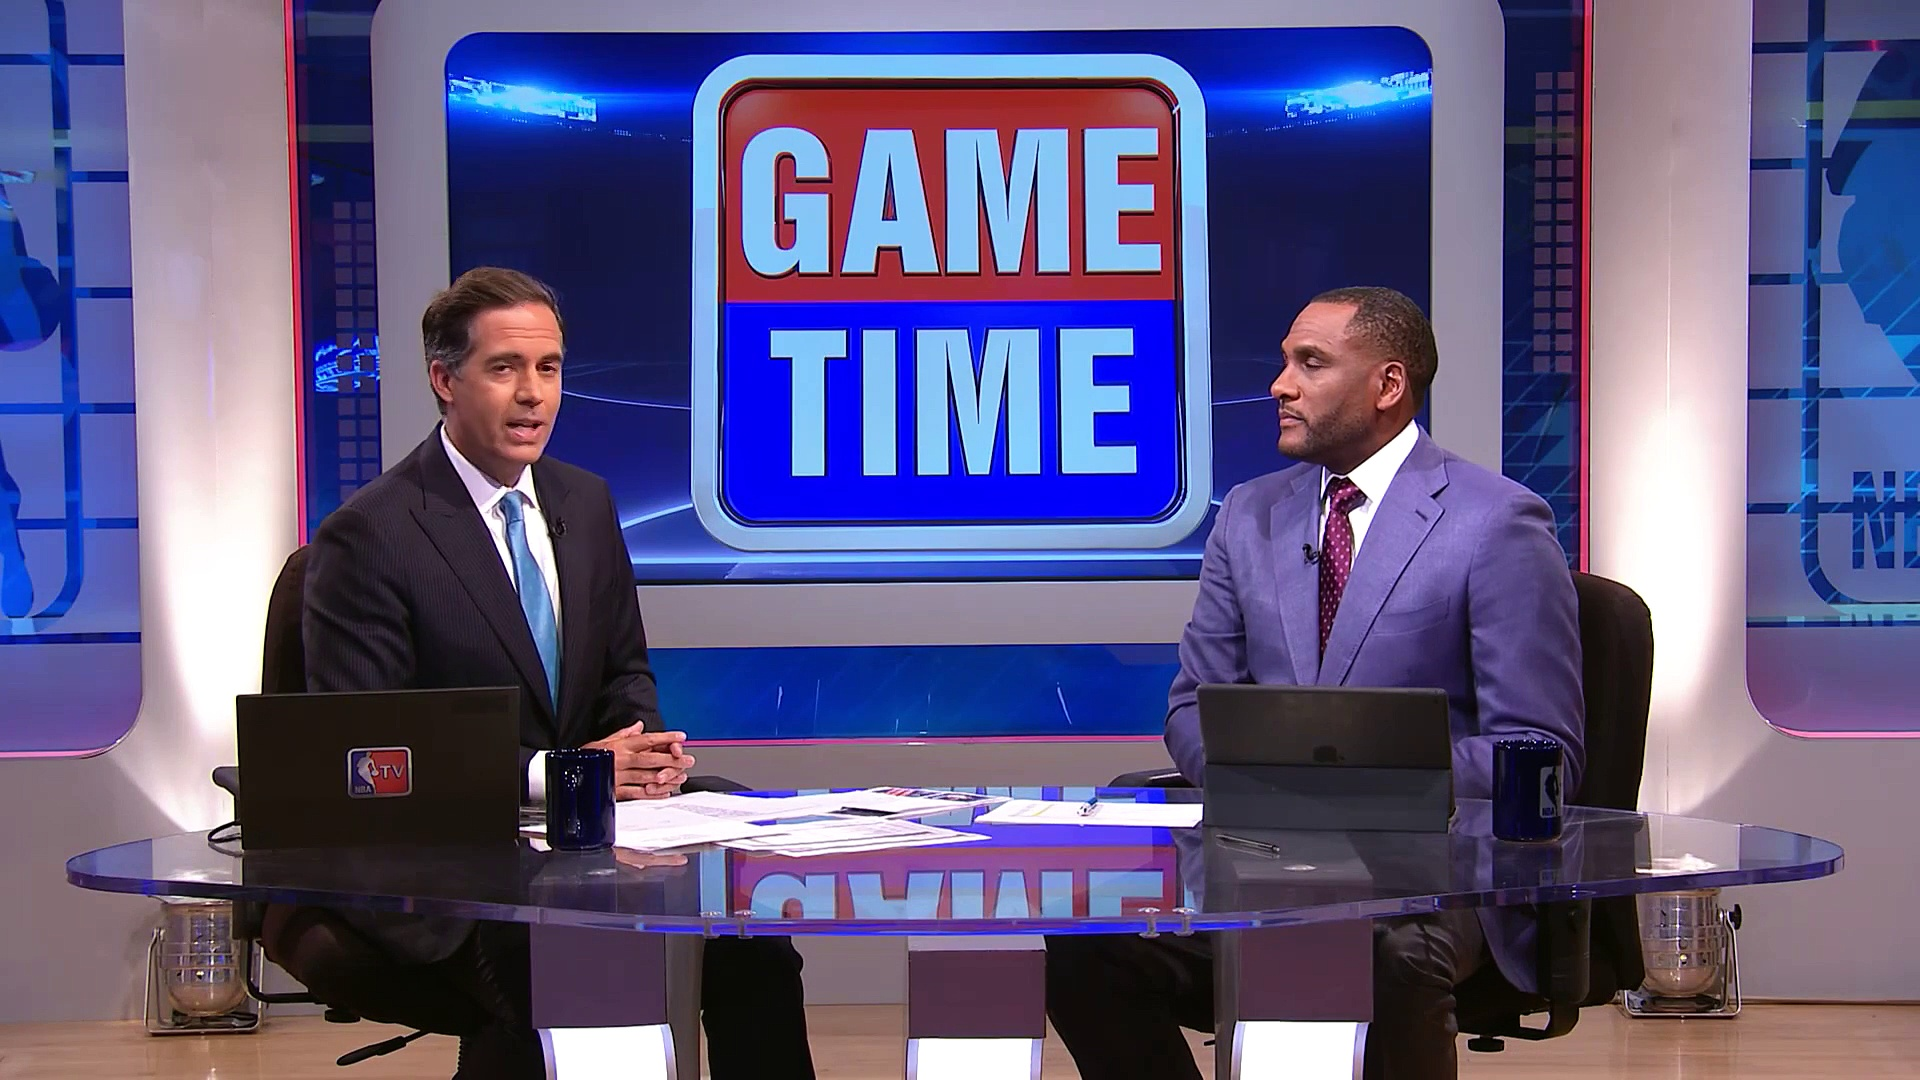 【NBA】Carmelo Anthony Trade Update – GameTime  2017 NBA Free Agency